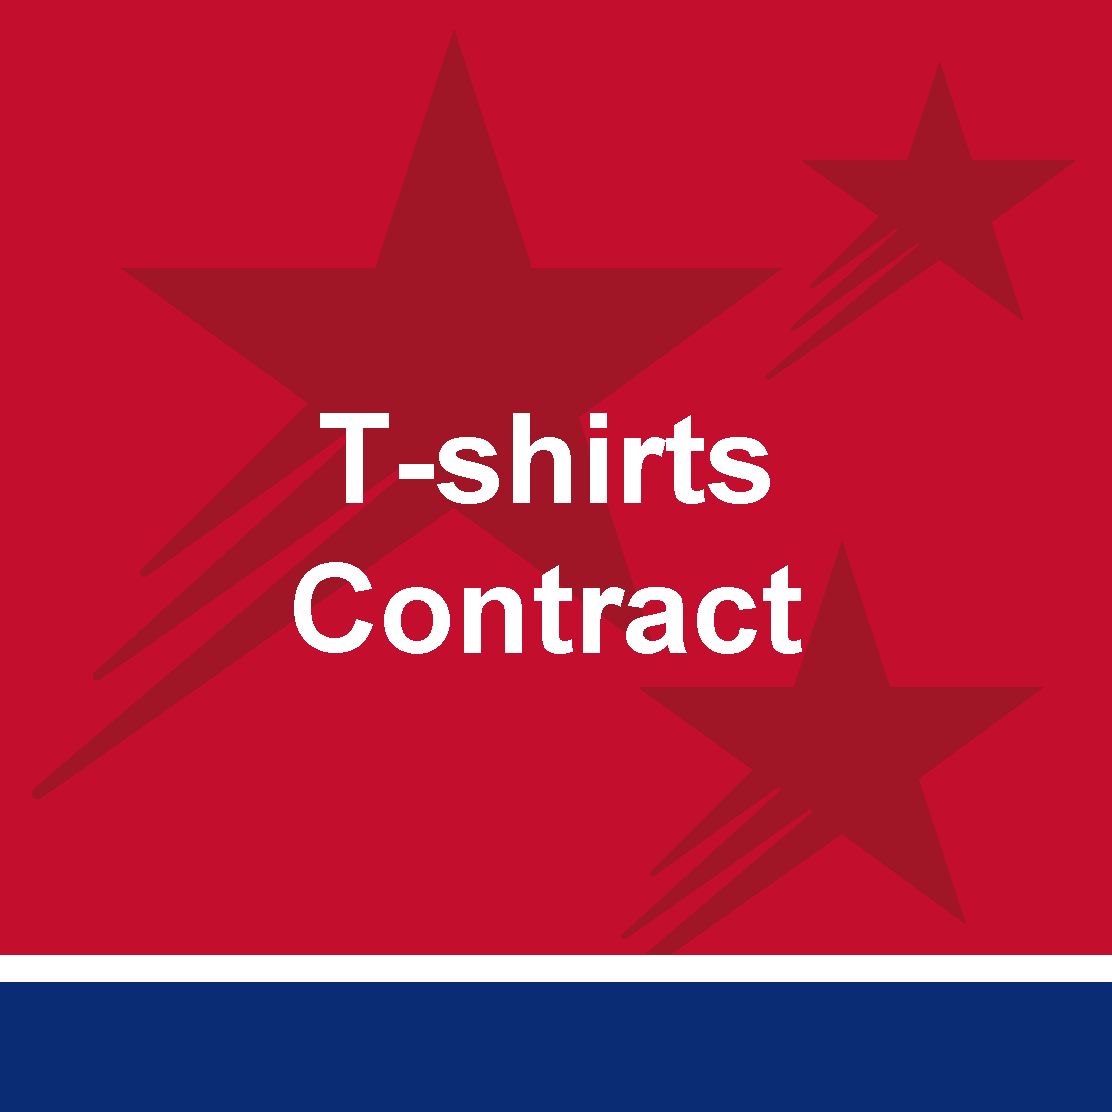 Tshirts Contract Button